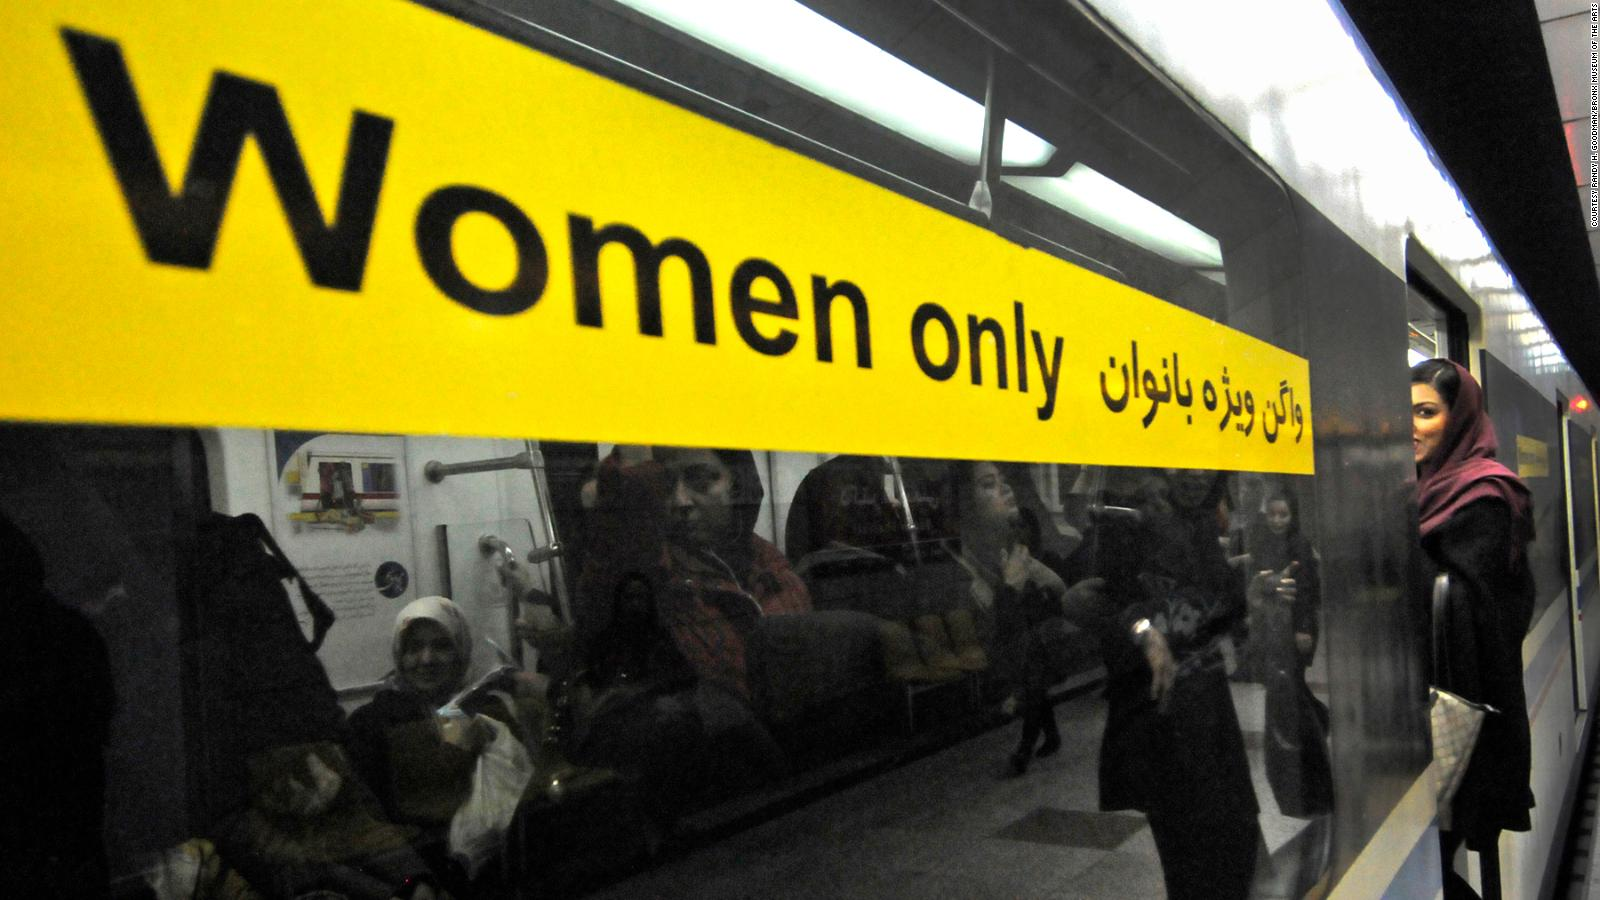 Specific wagons in the subway for women